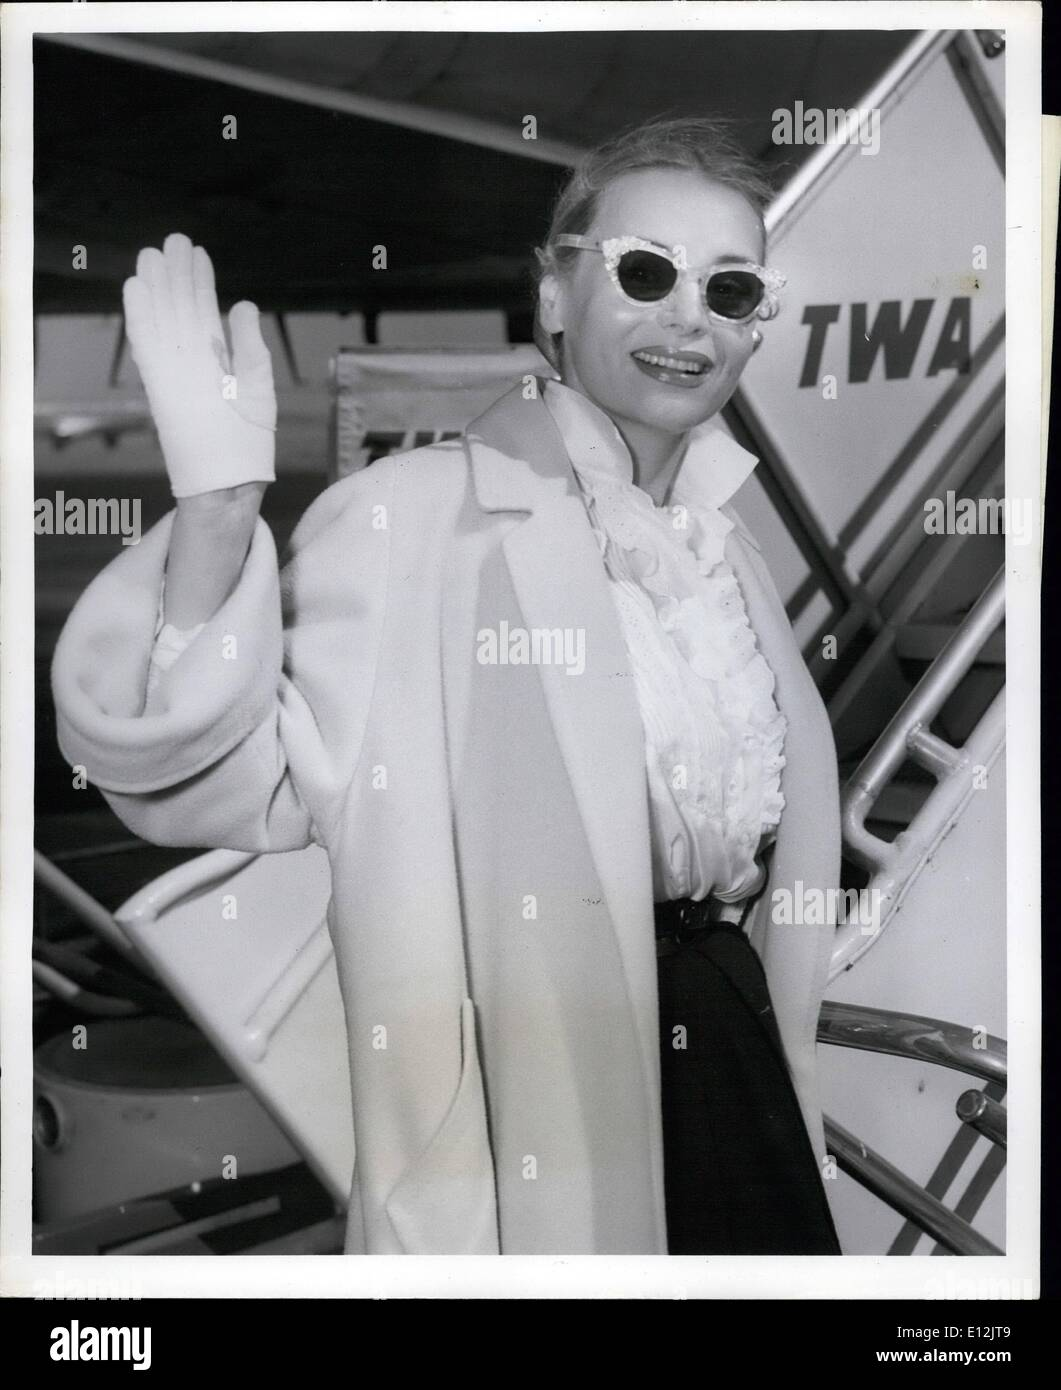 Feb. 24, 2012 - Idlewild Airport, N.Y., March 10 - Buxom Marie Wilson of the movies boards a TWA Plane here today Stock Photo